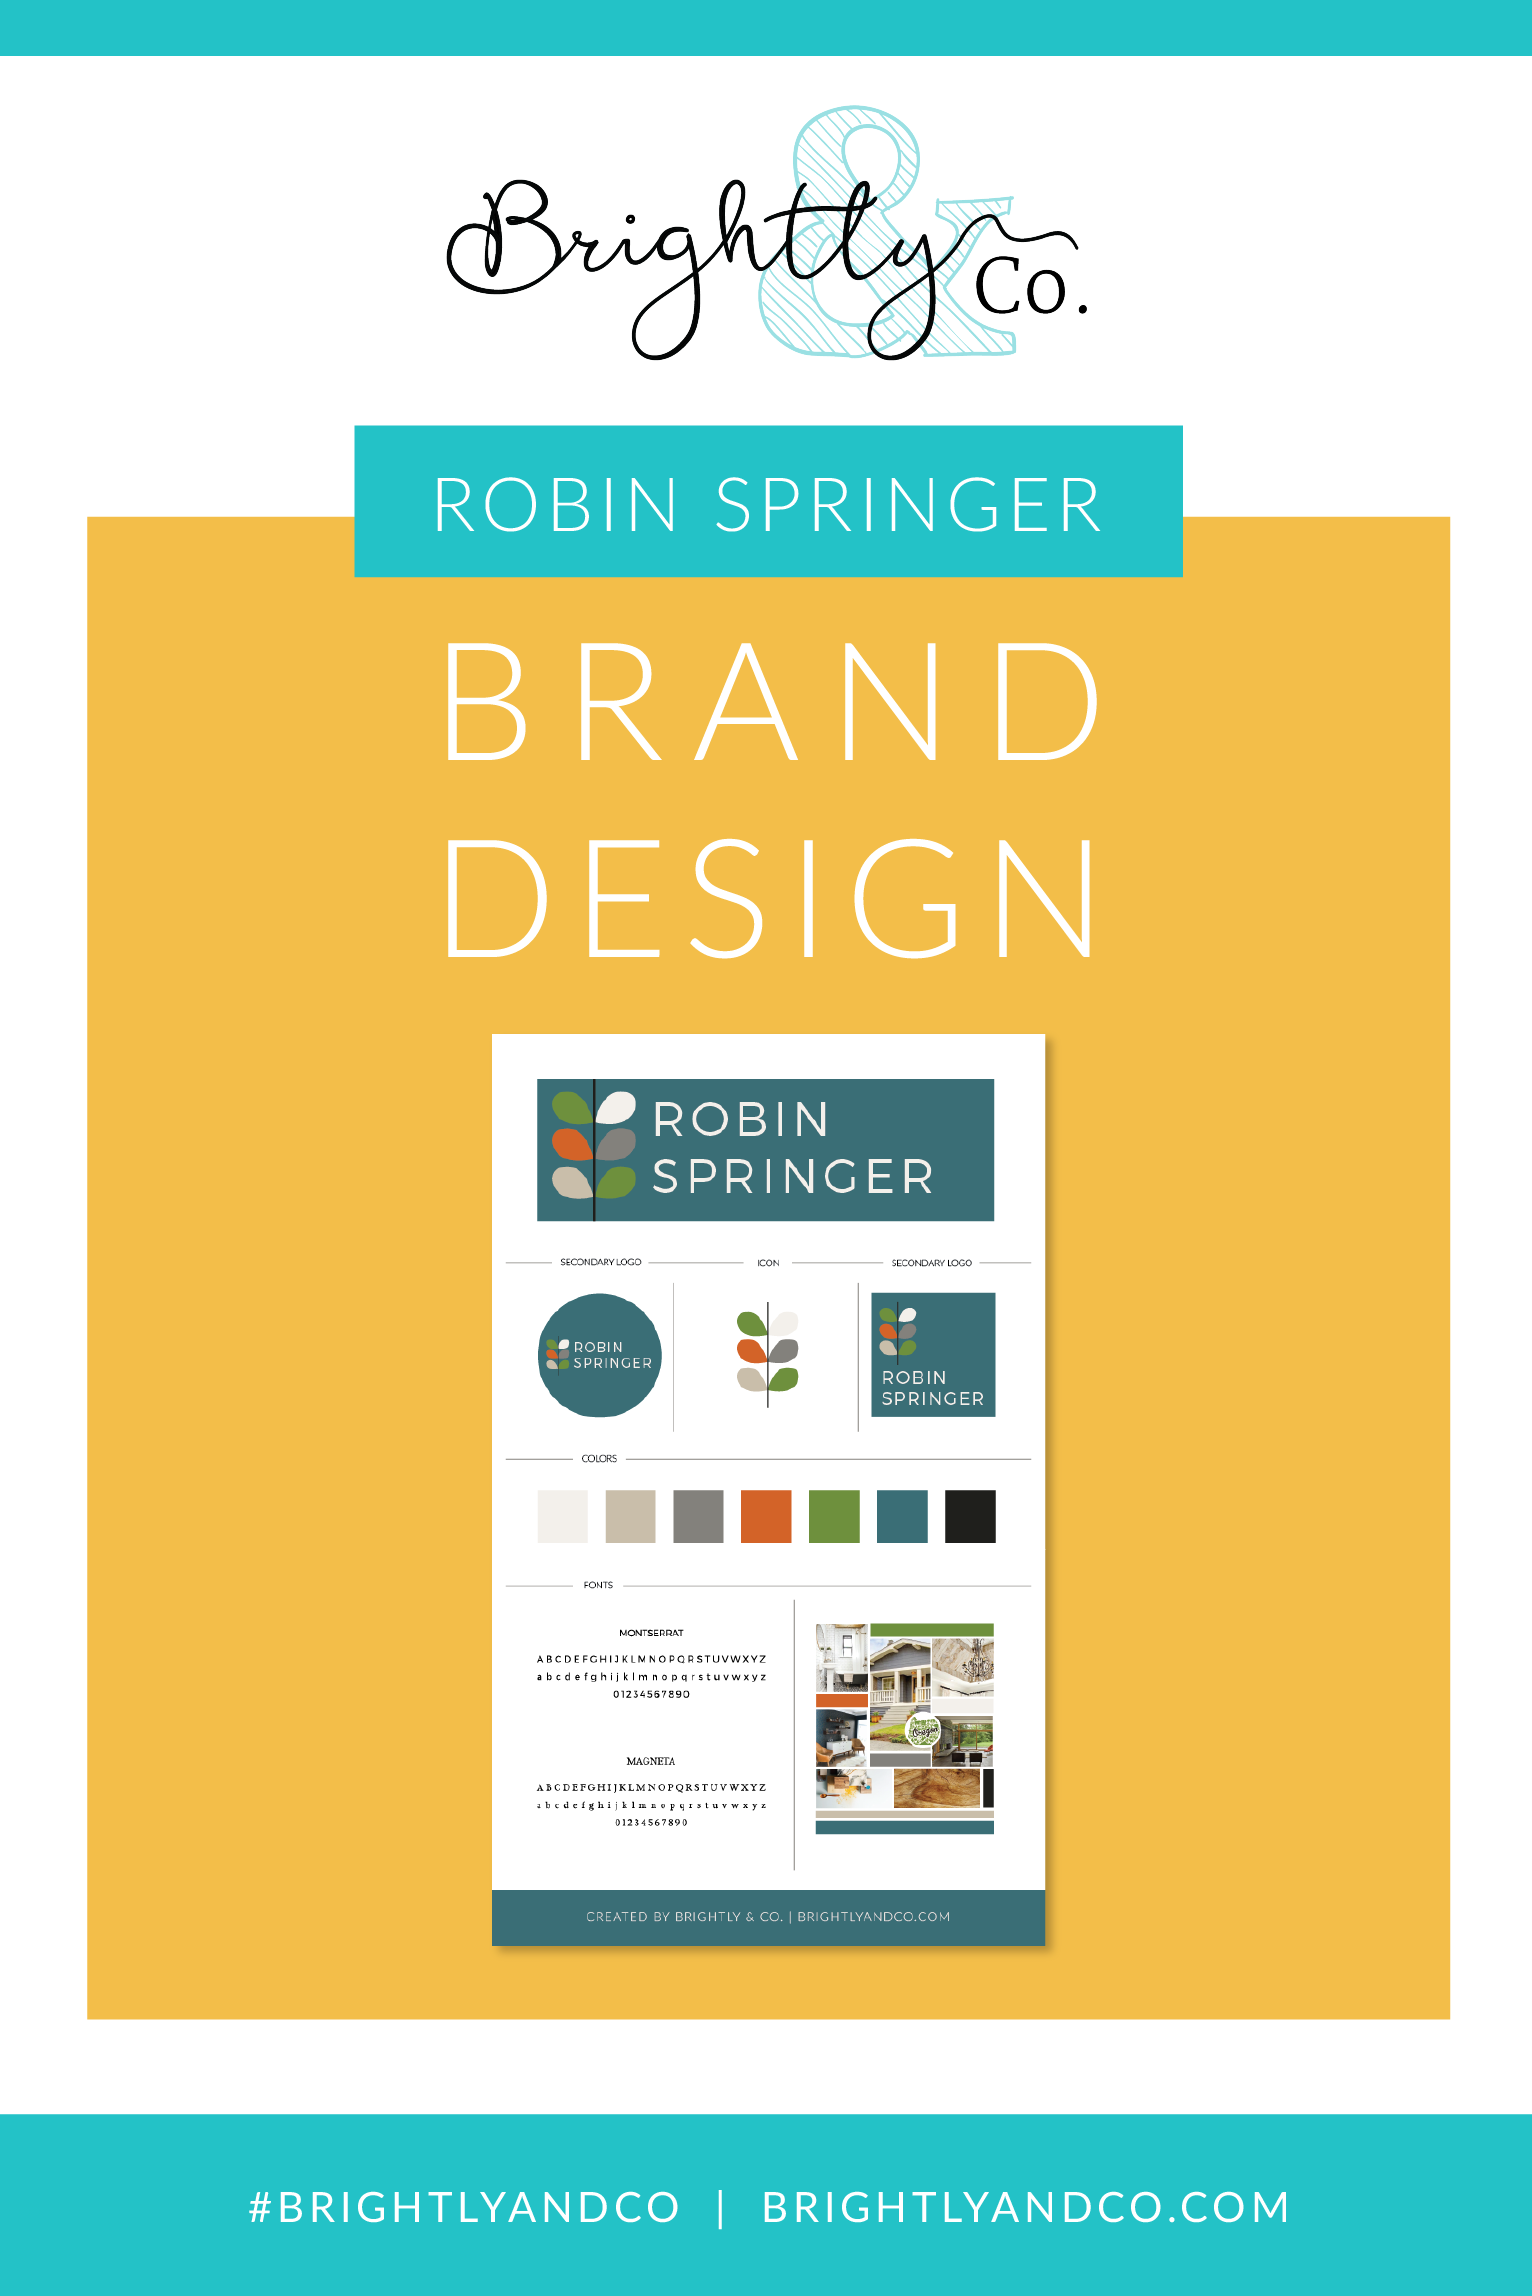 Did you love this Brand Design? Pin it to Pinterest!